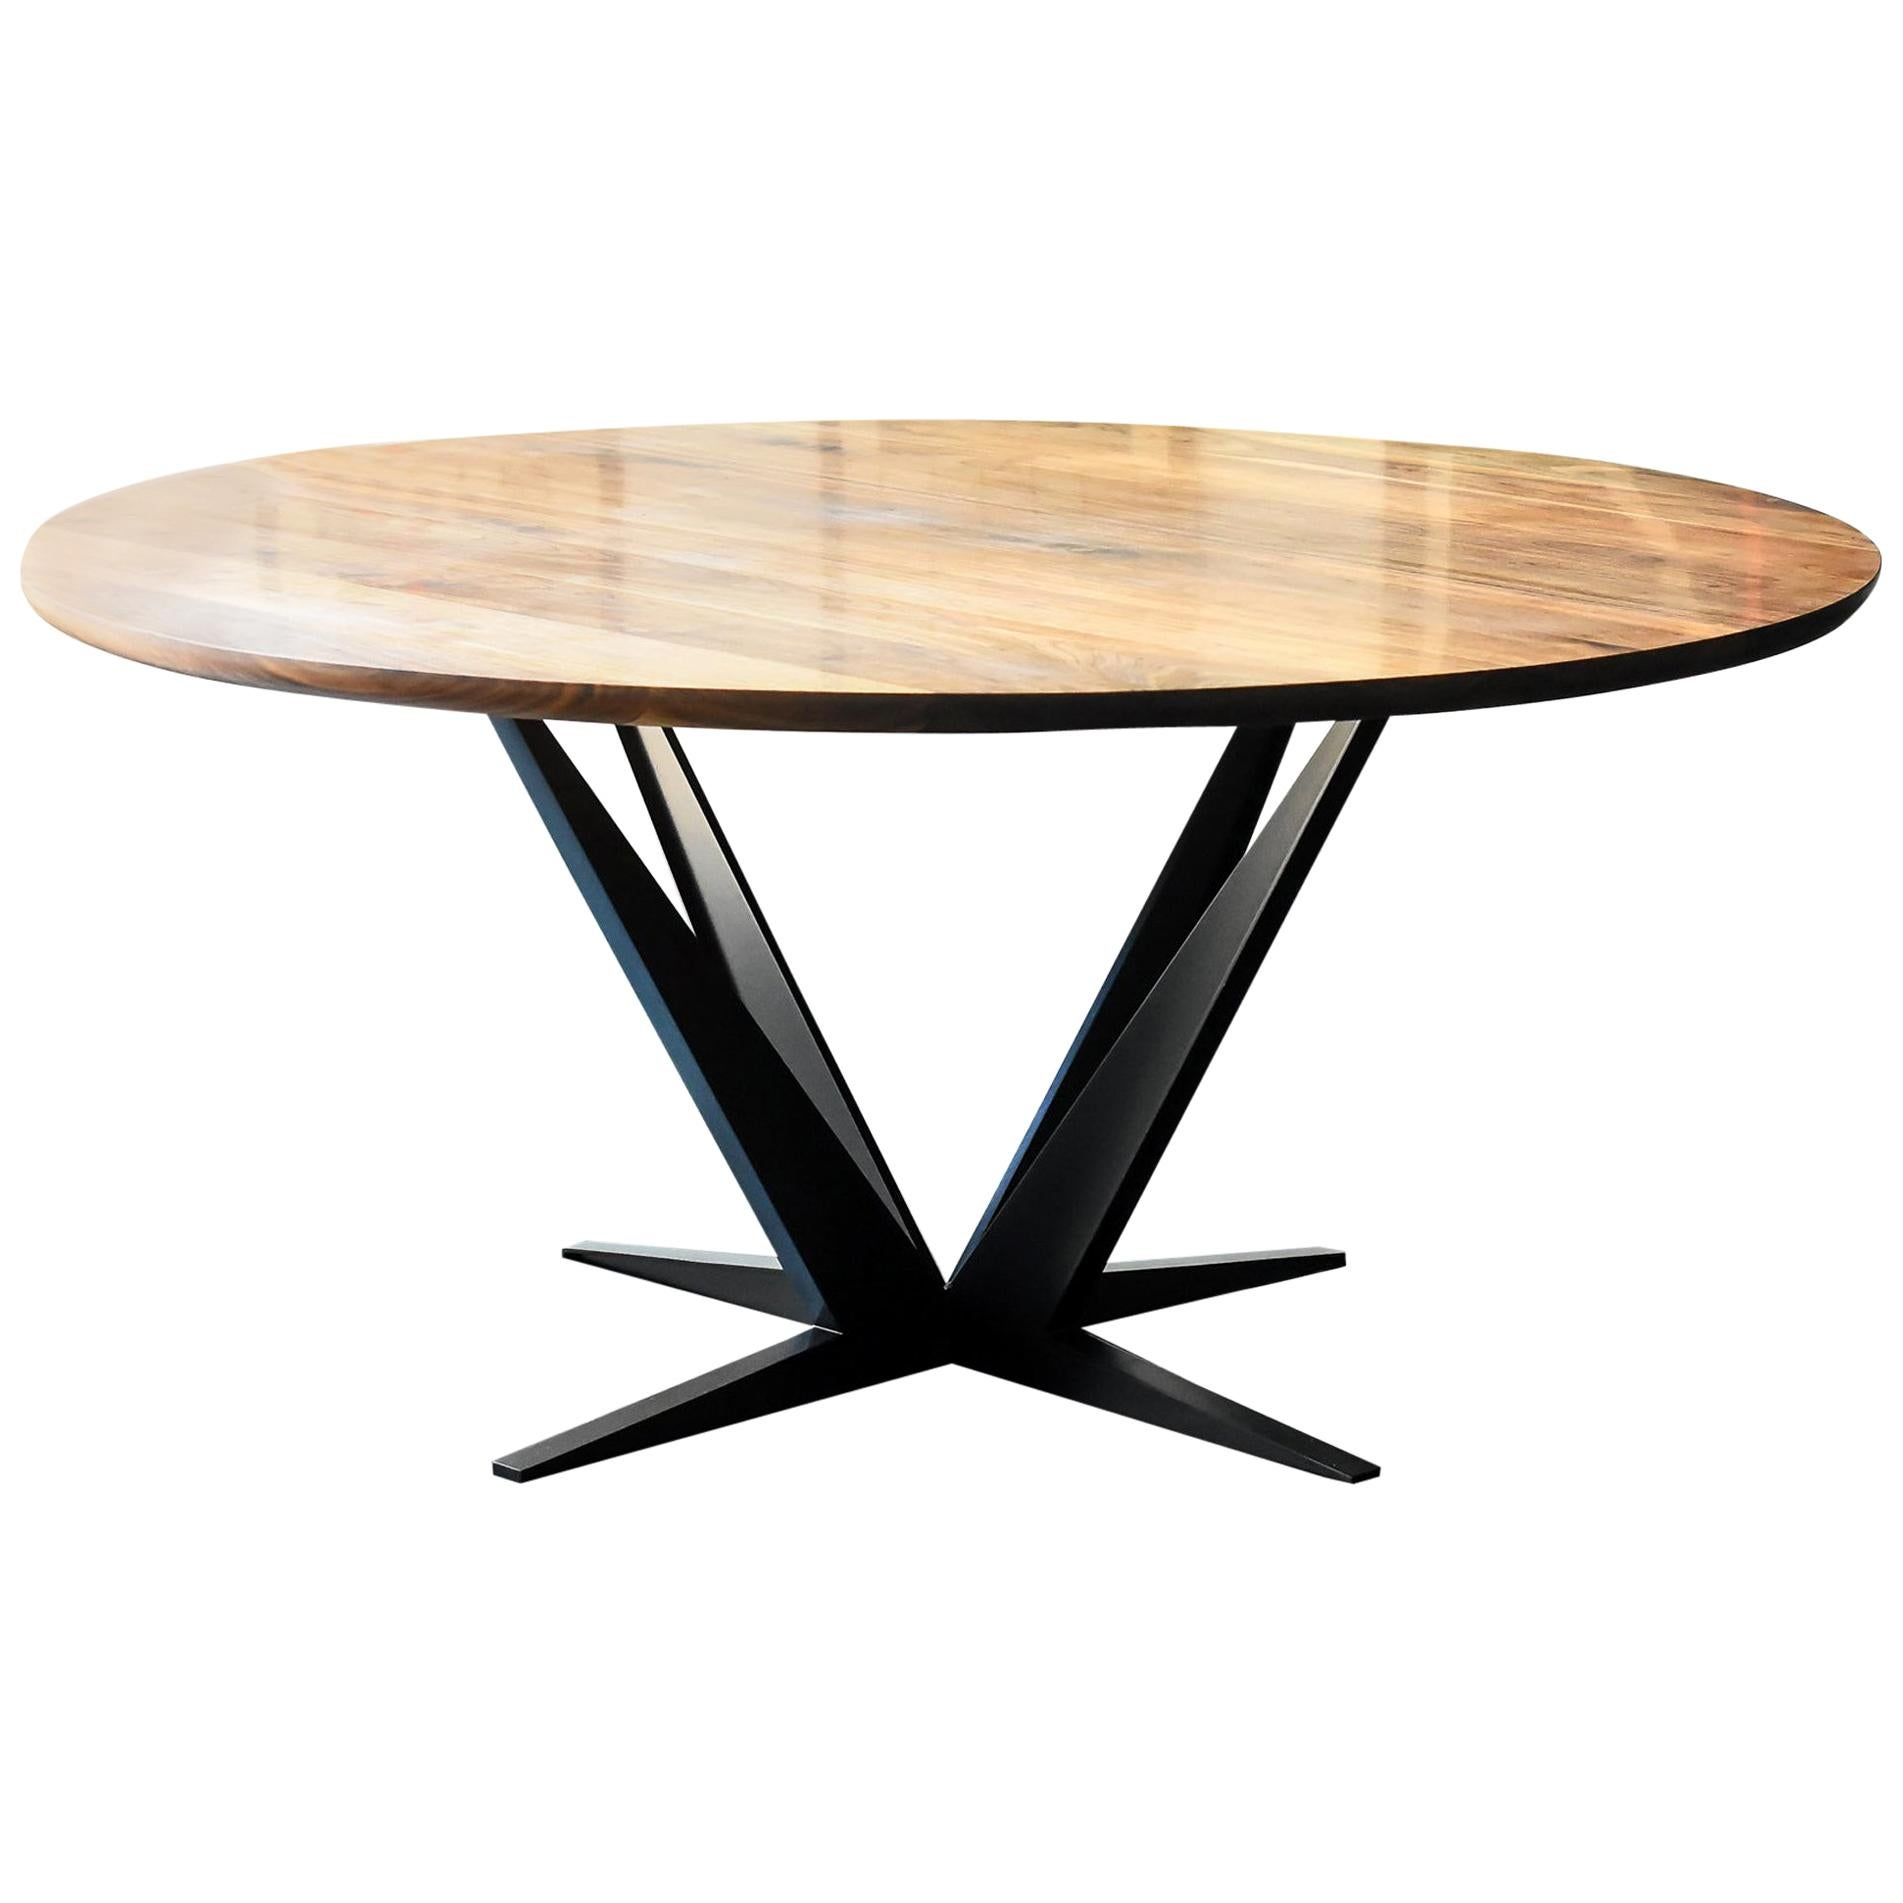 Agave Round Walnut Dining Table with Steel Atomic Base by Atra